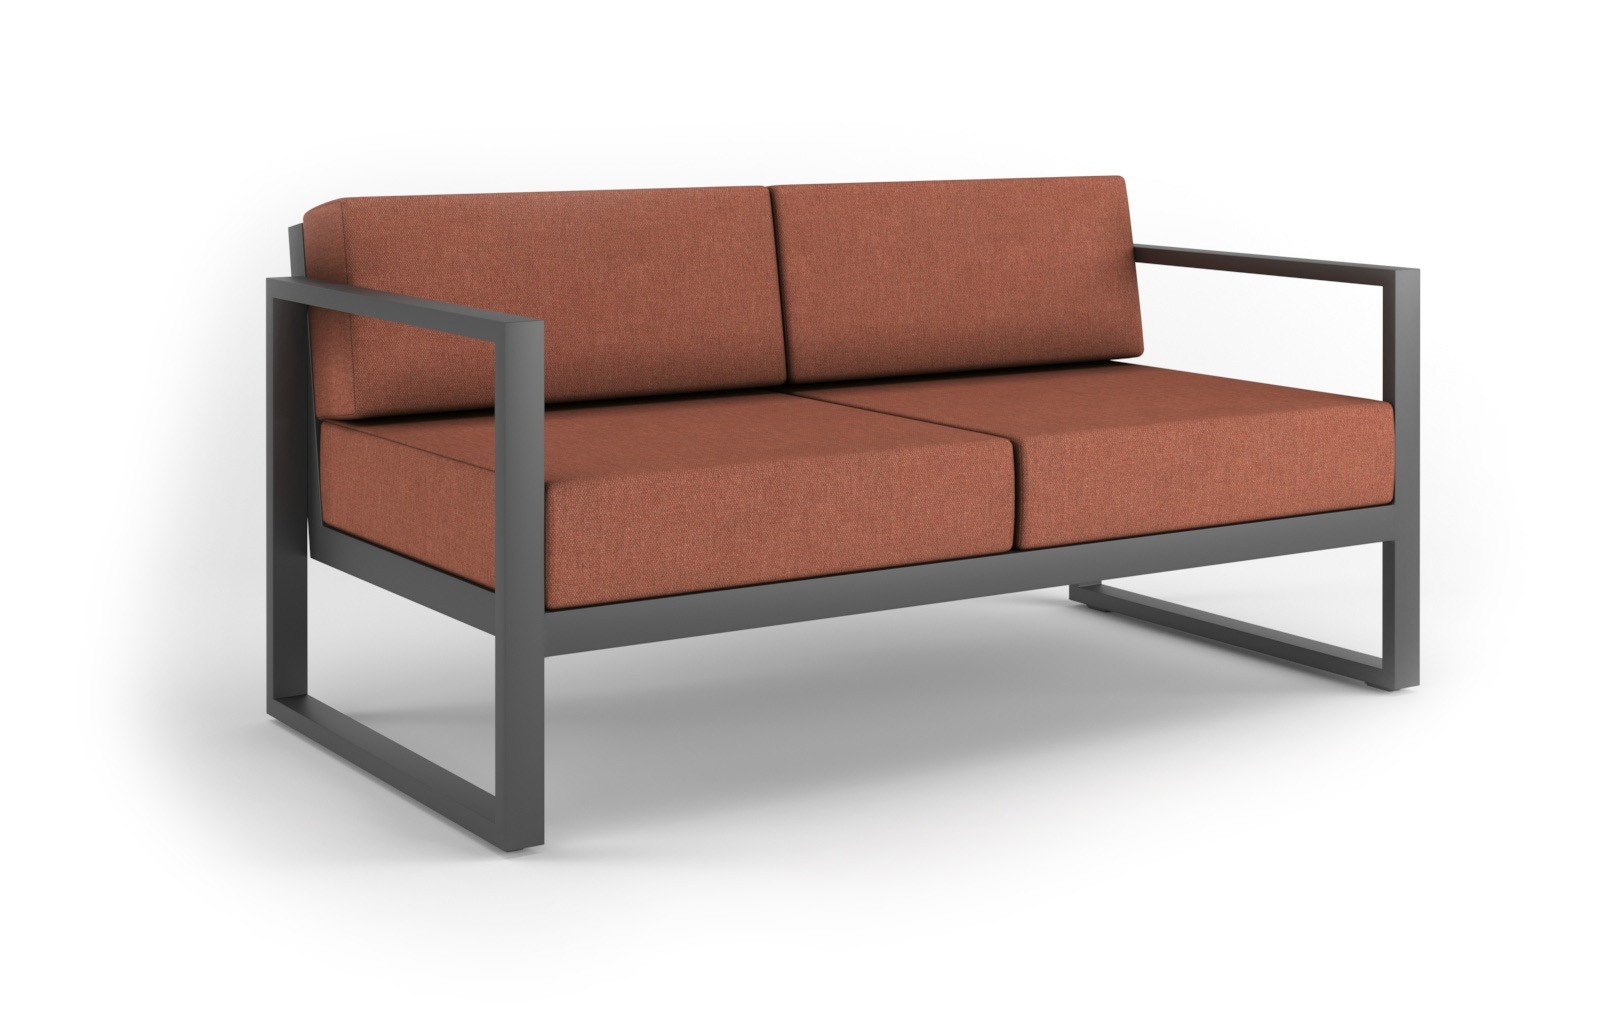 Dodeka Premise Loveseat with Optional Heated Seats